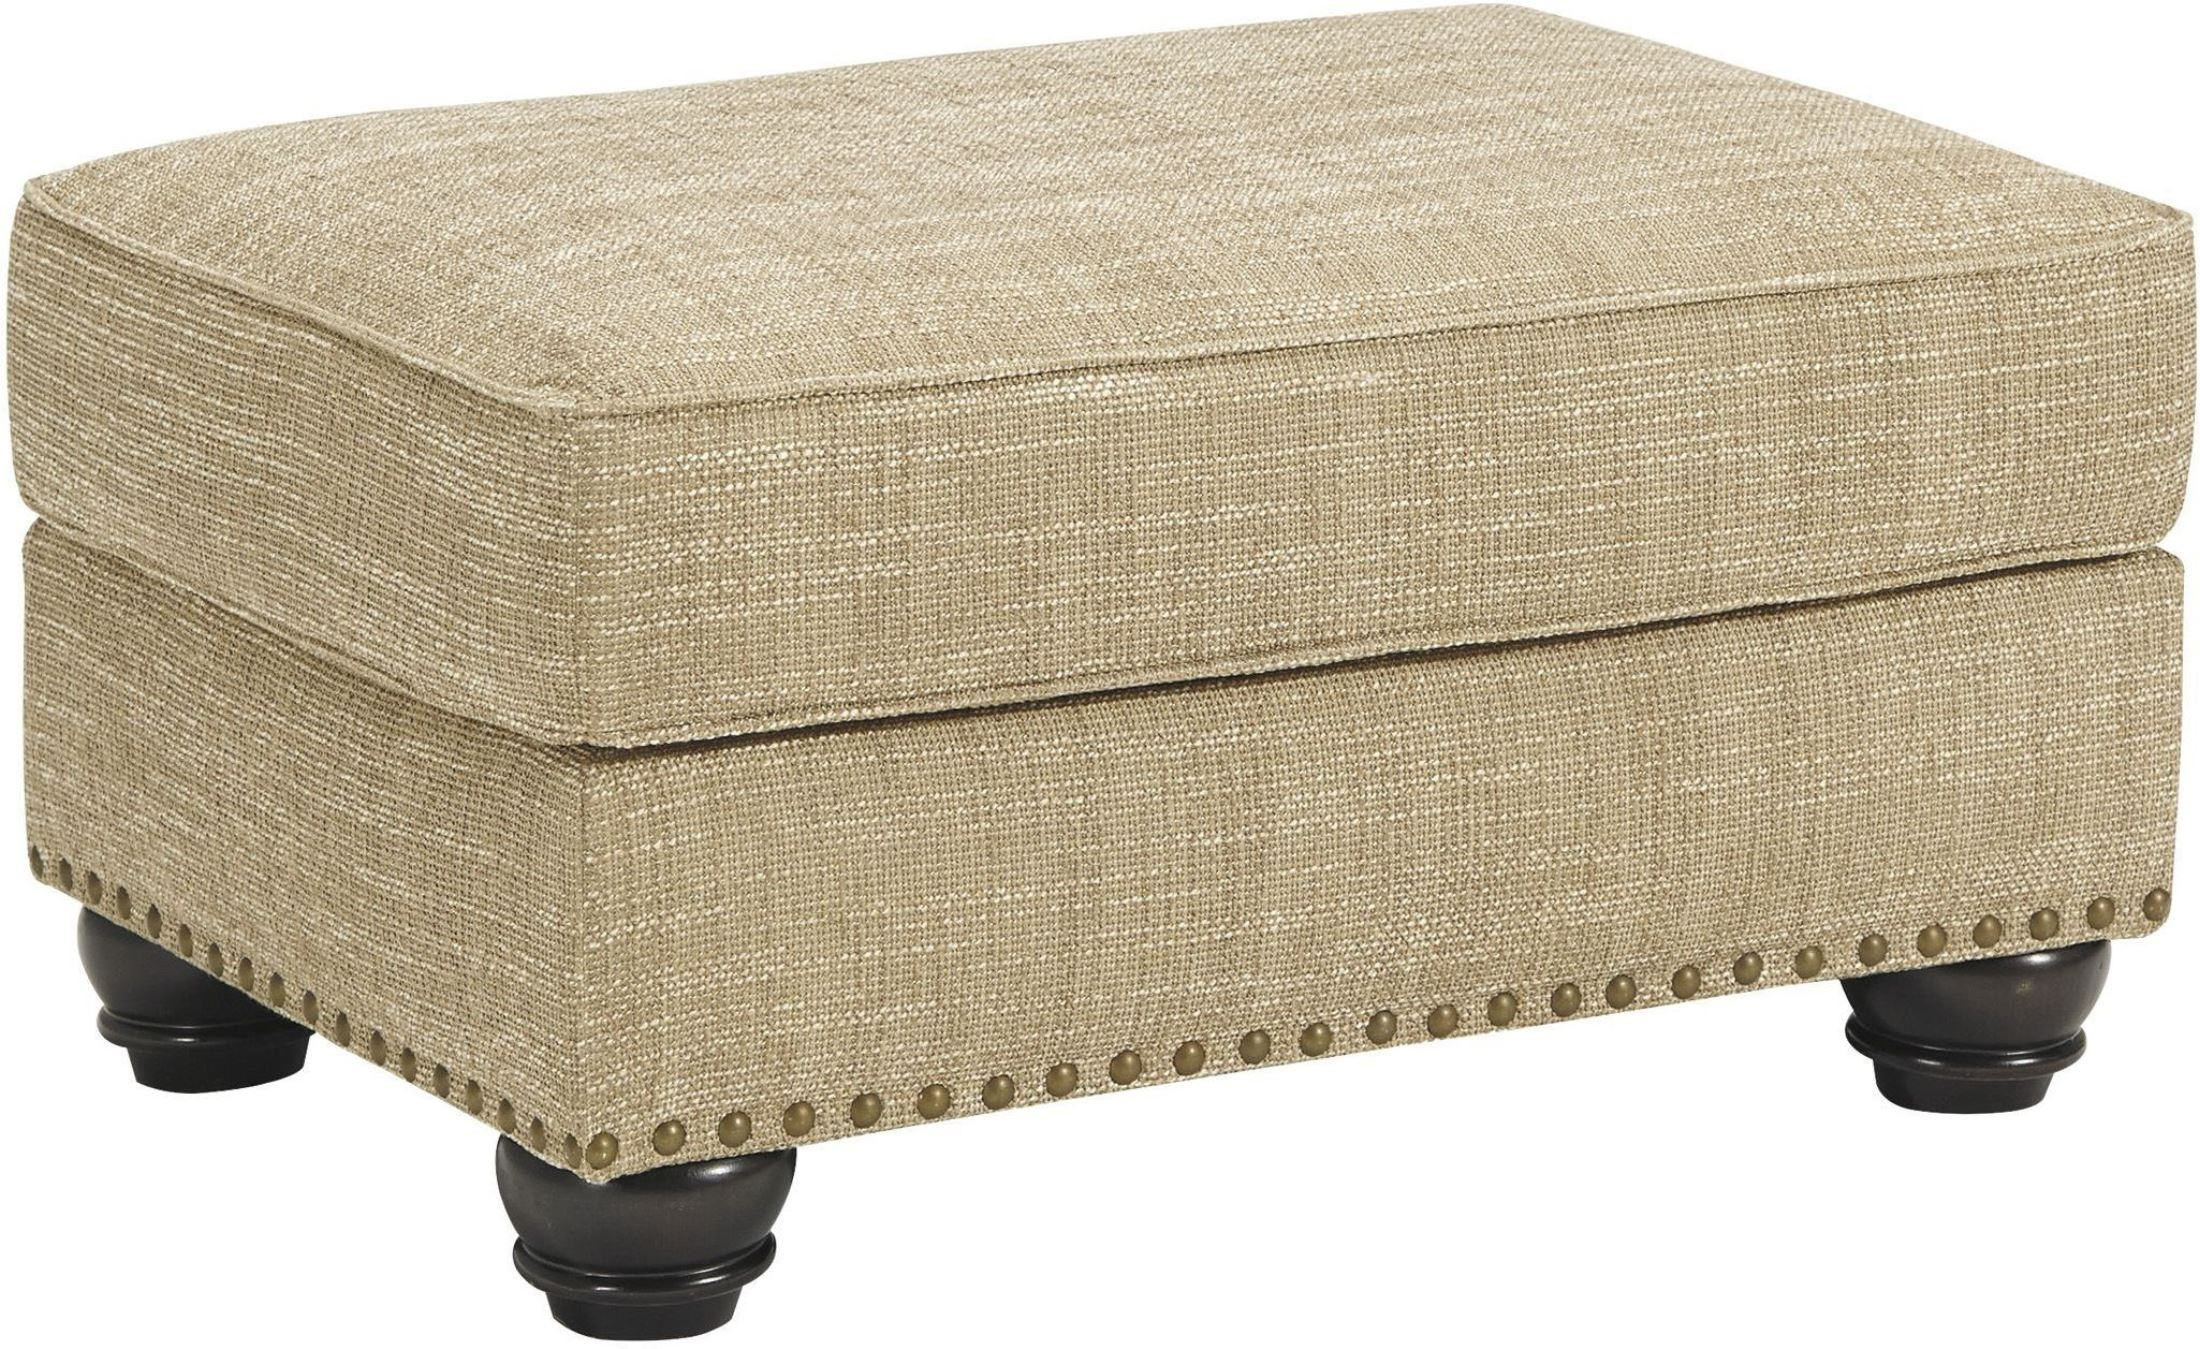 buy chair candoro oatmeal ottoman from coleman furniture 11806 | 11806 14 sw